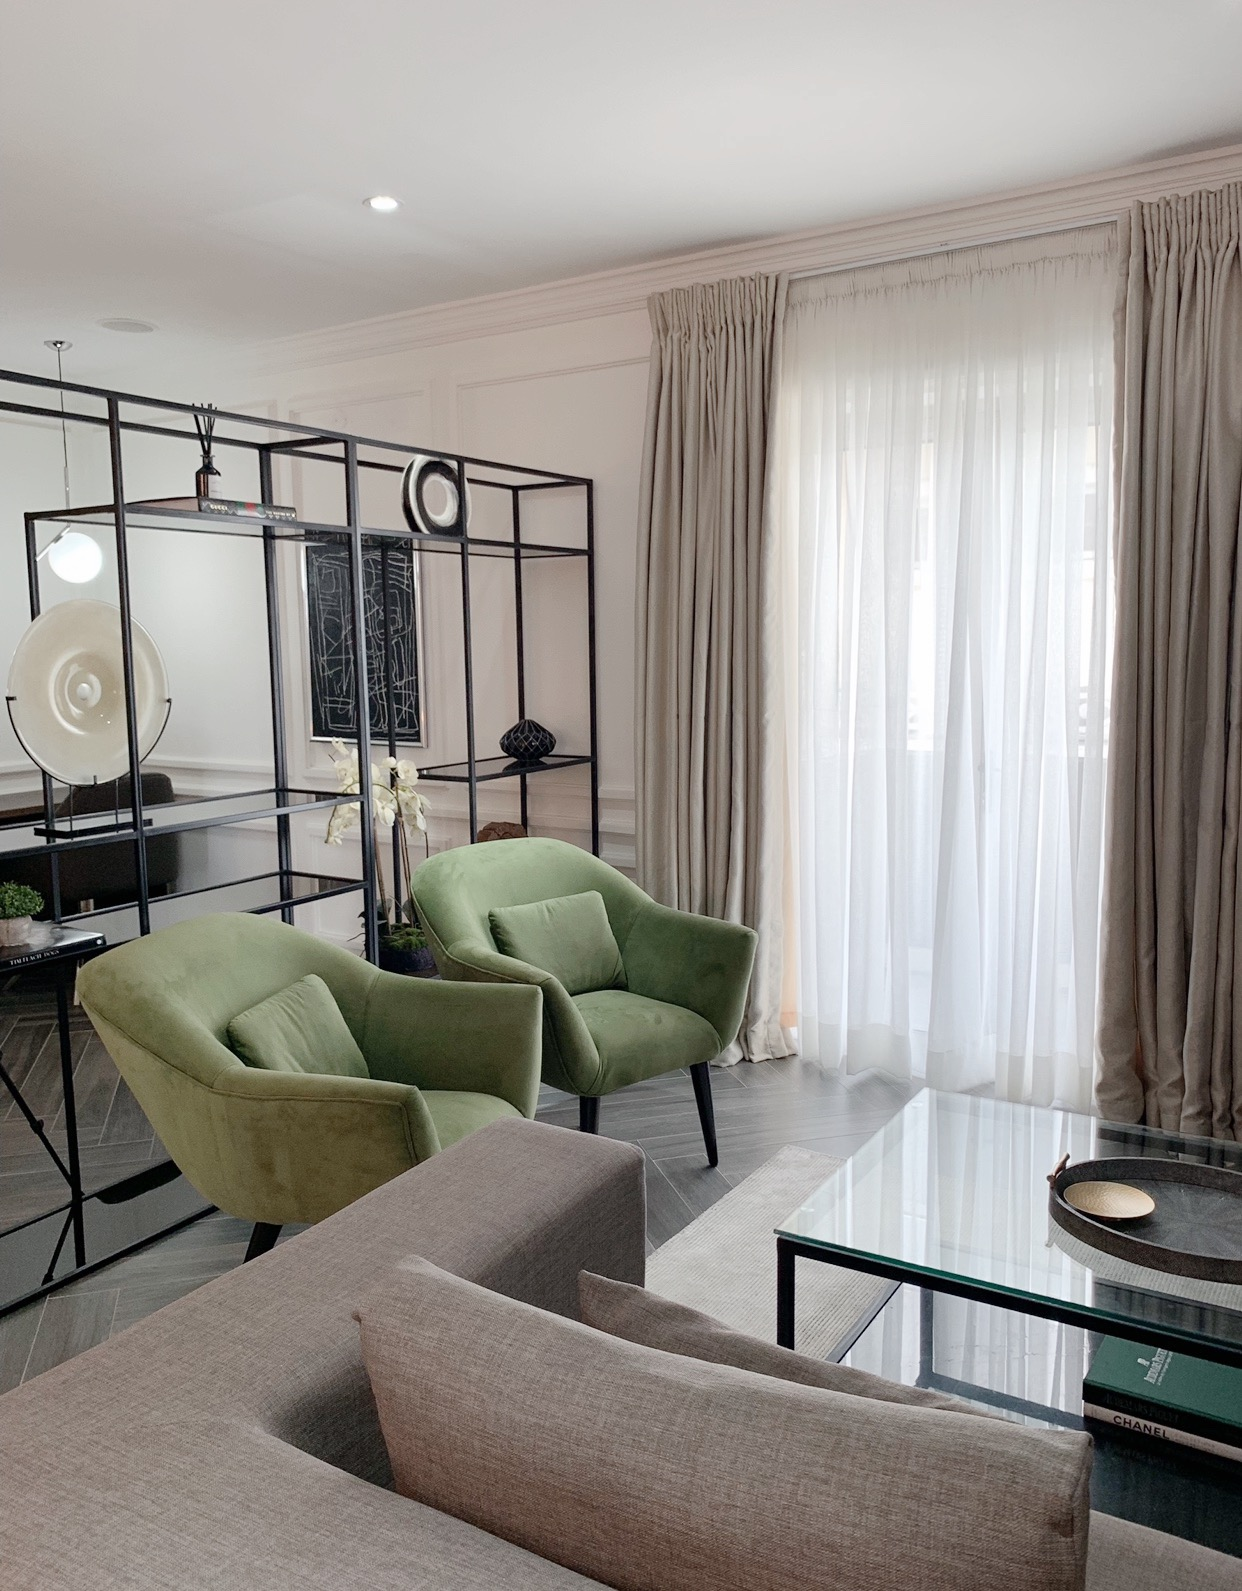 An apartment with vintage and modern features in Lagos by Studio Emodi.